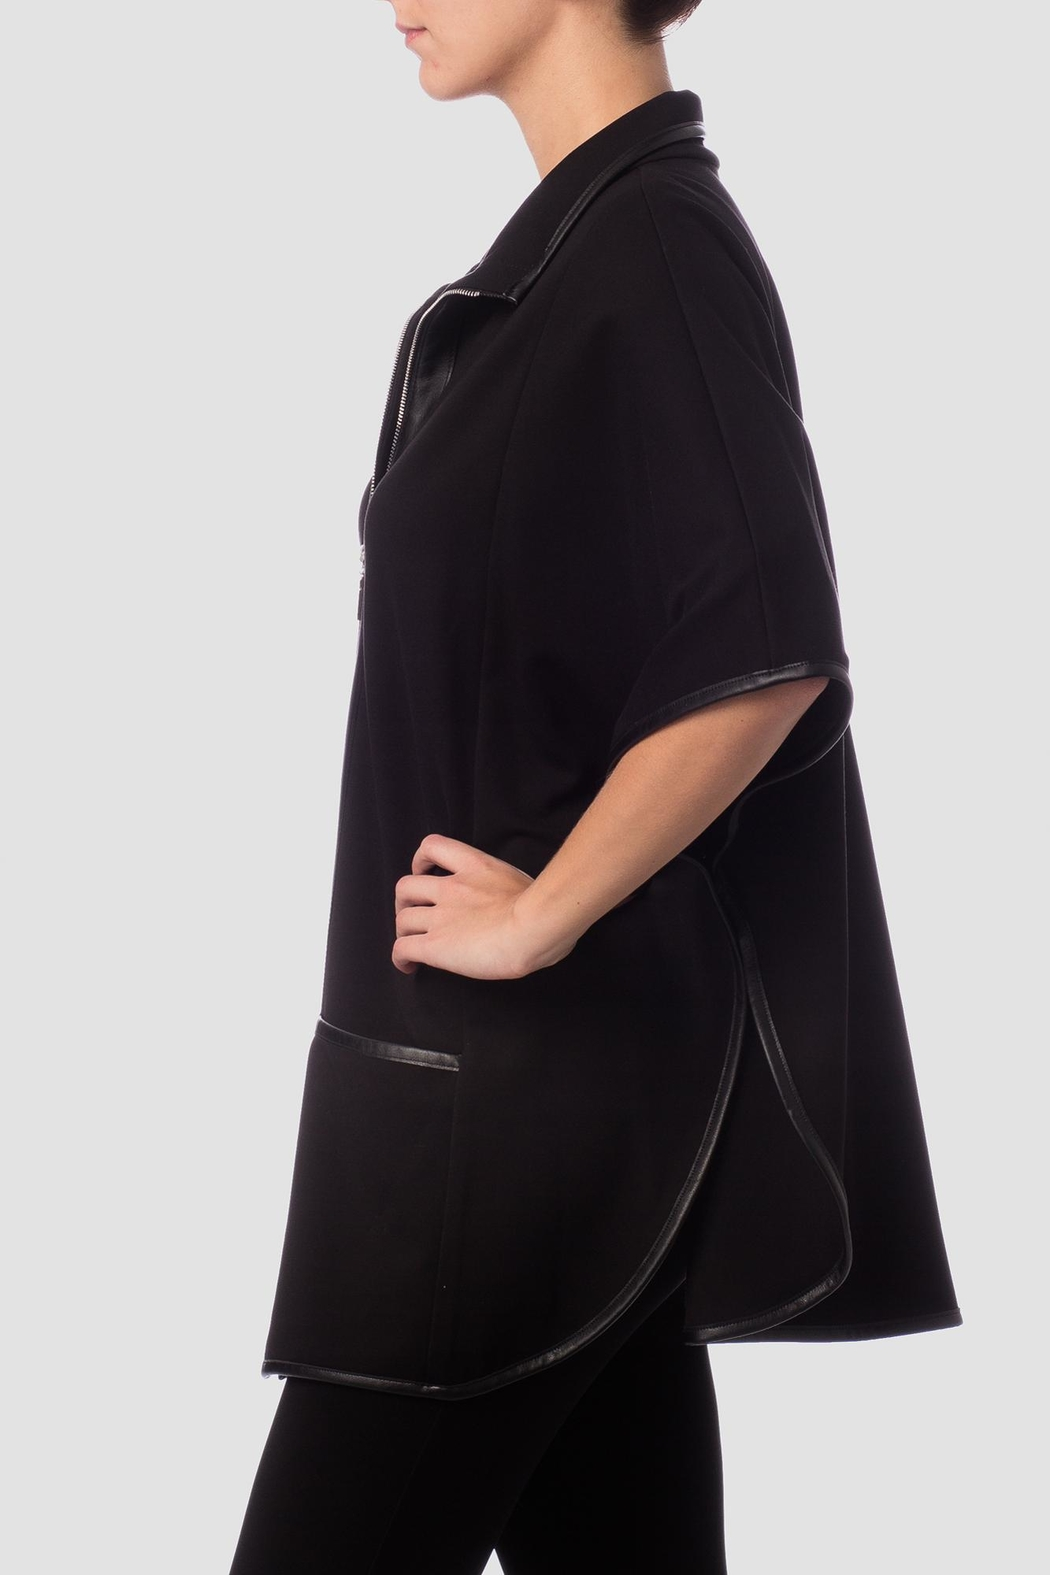 Joseph Ribkoff Black Cape Top - Side Cropped Image